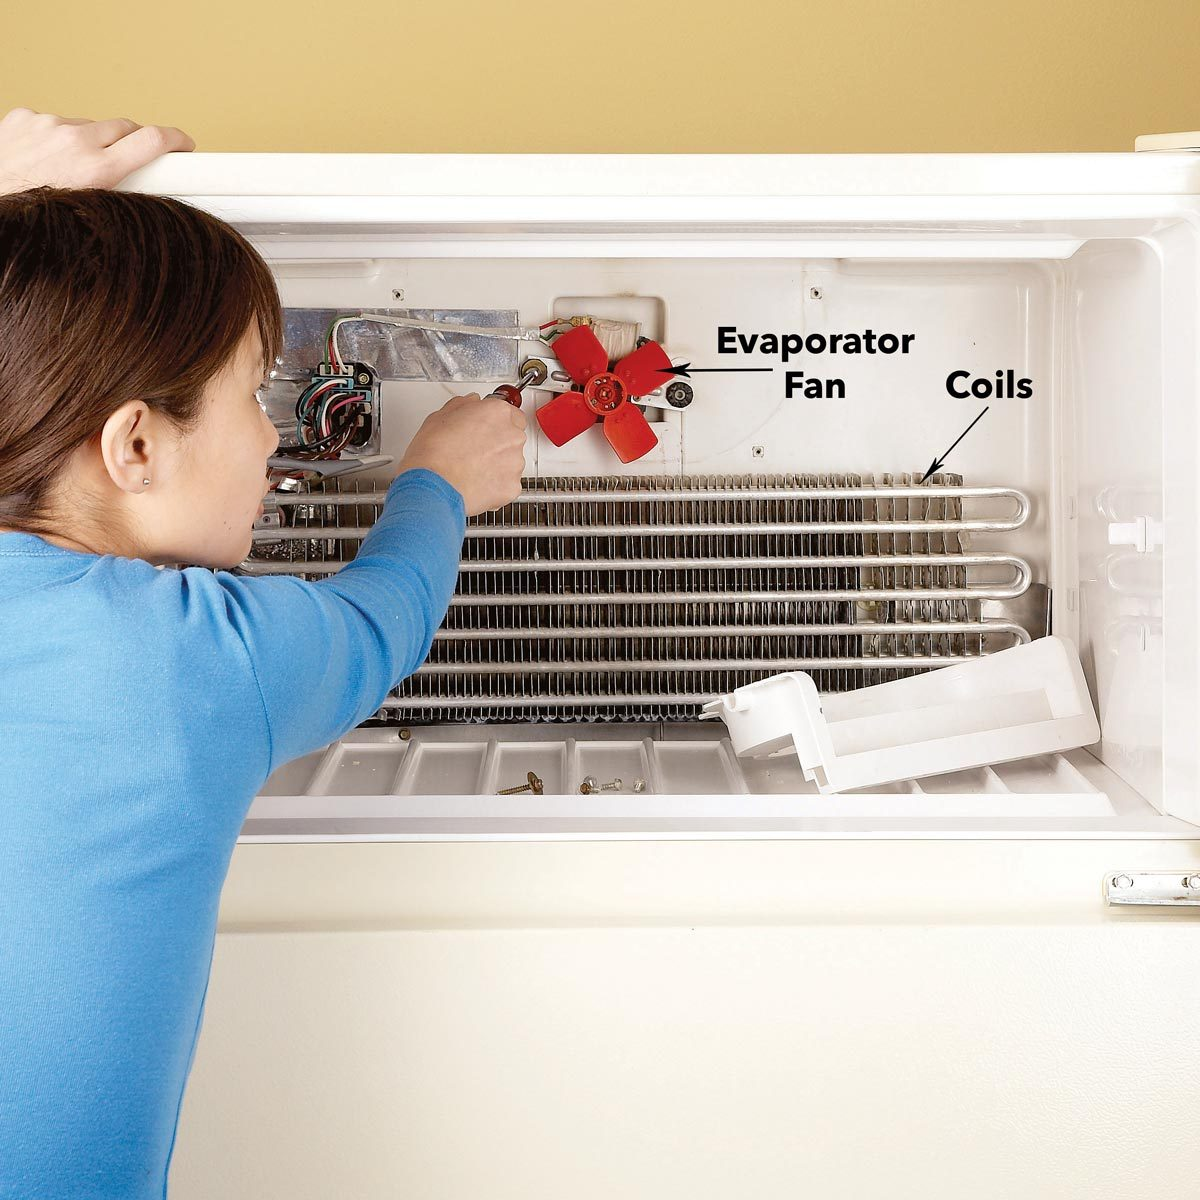 remove evaporator fan fridge freezer fan